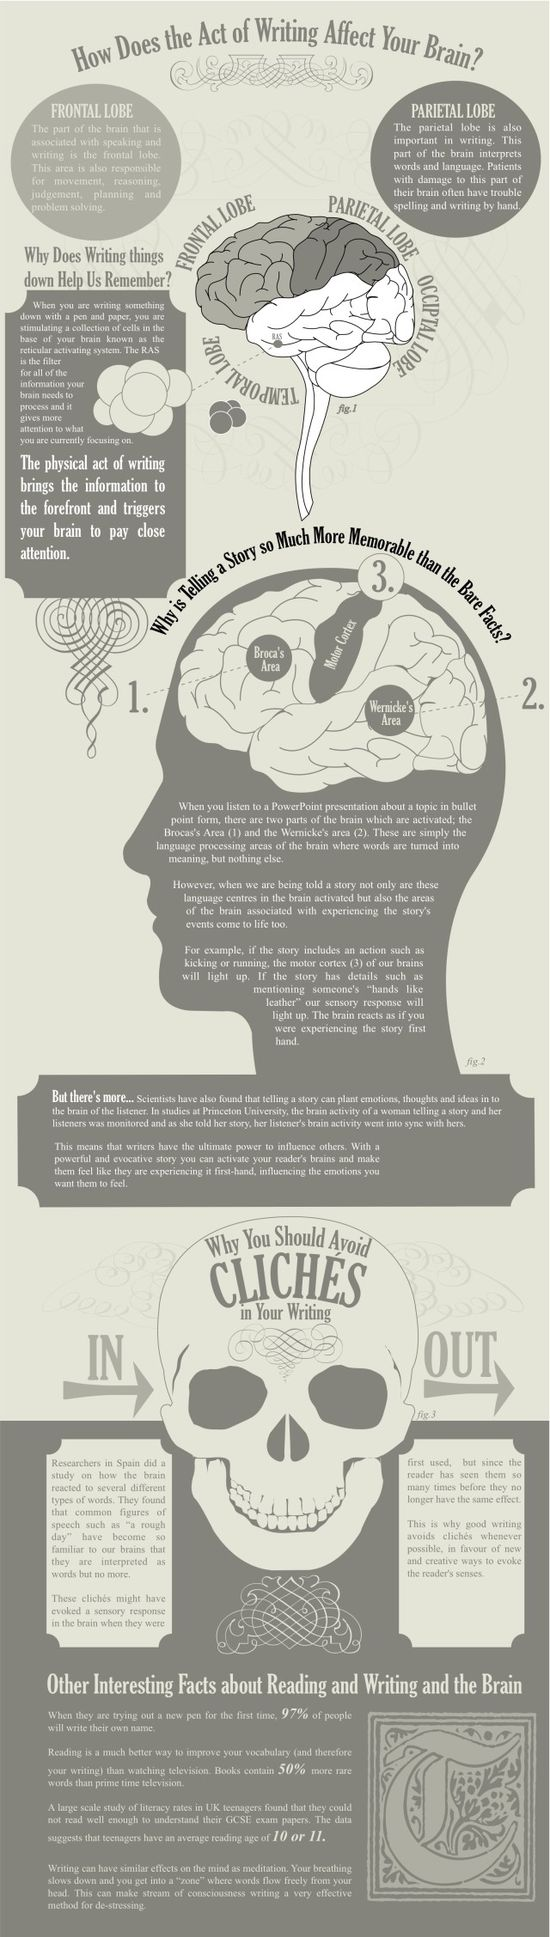 "Infographic: ""How Does The Act Of Writing Affect Your Brain?"""